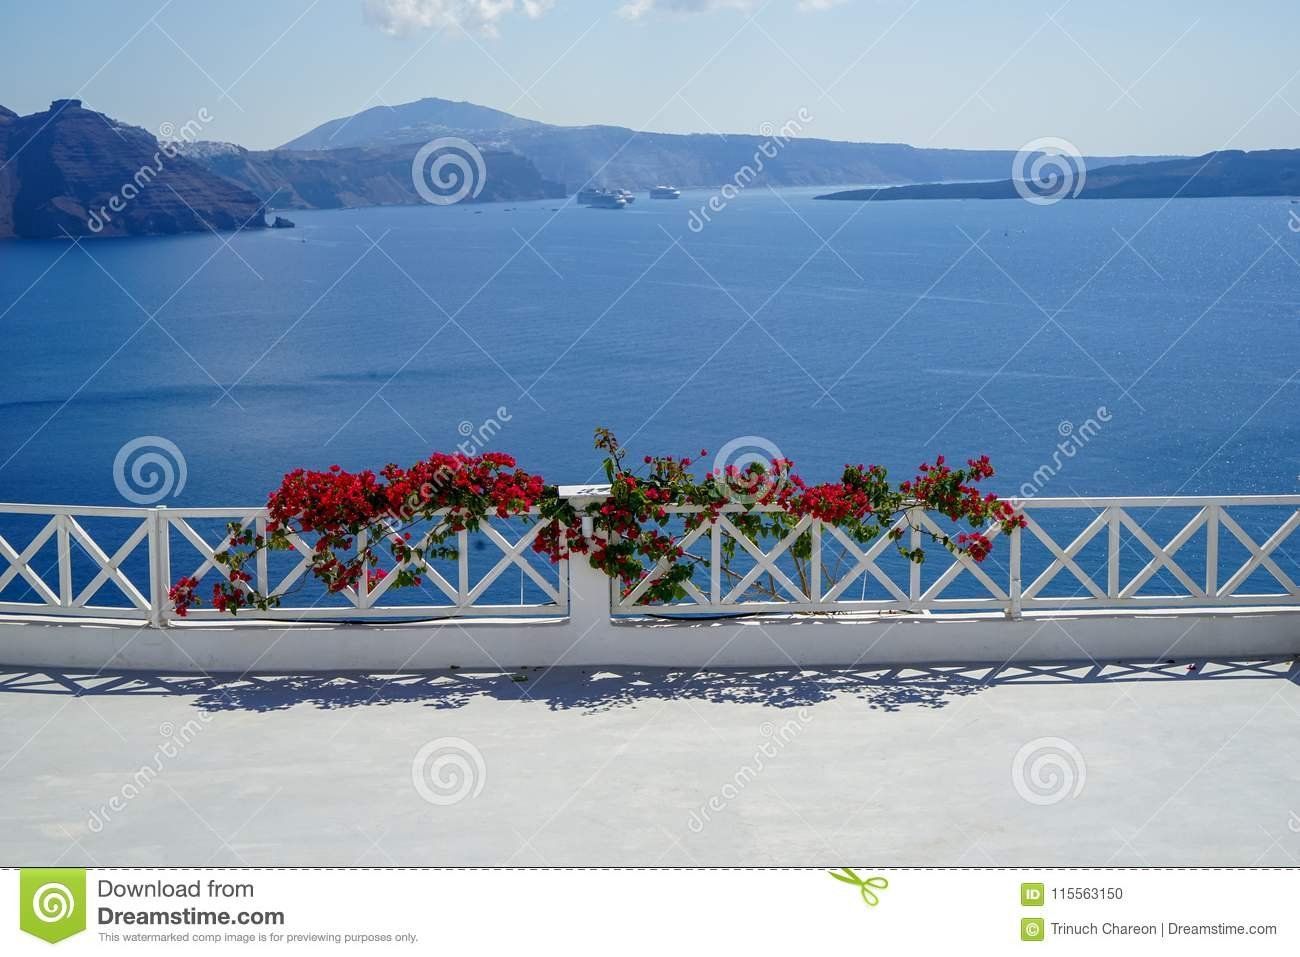 White island balcony with dark pink red Bougainvillea flower foreground in front of scenic mediterranean sea view and caldera